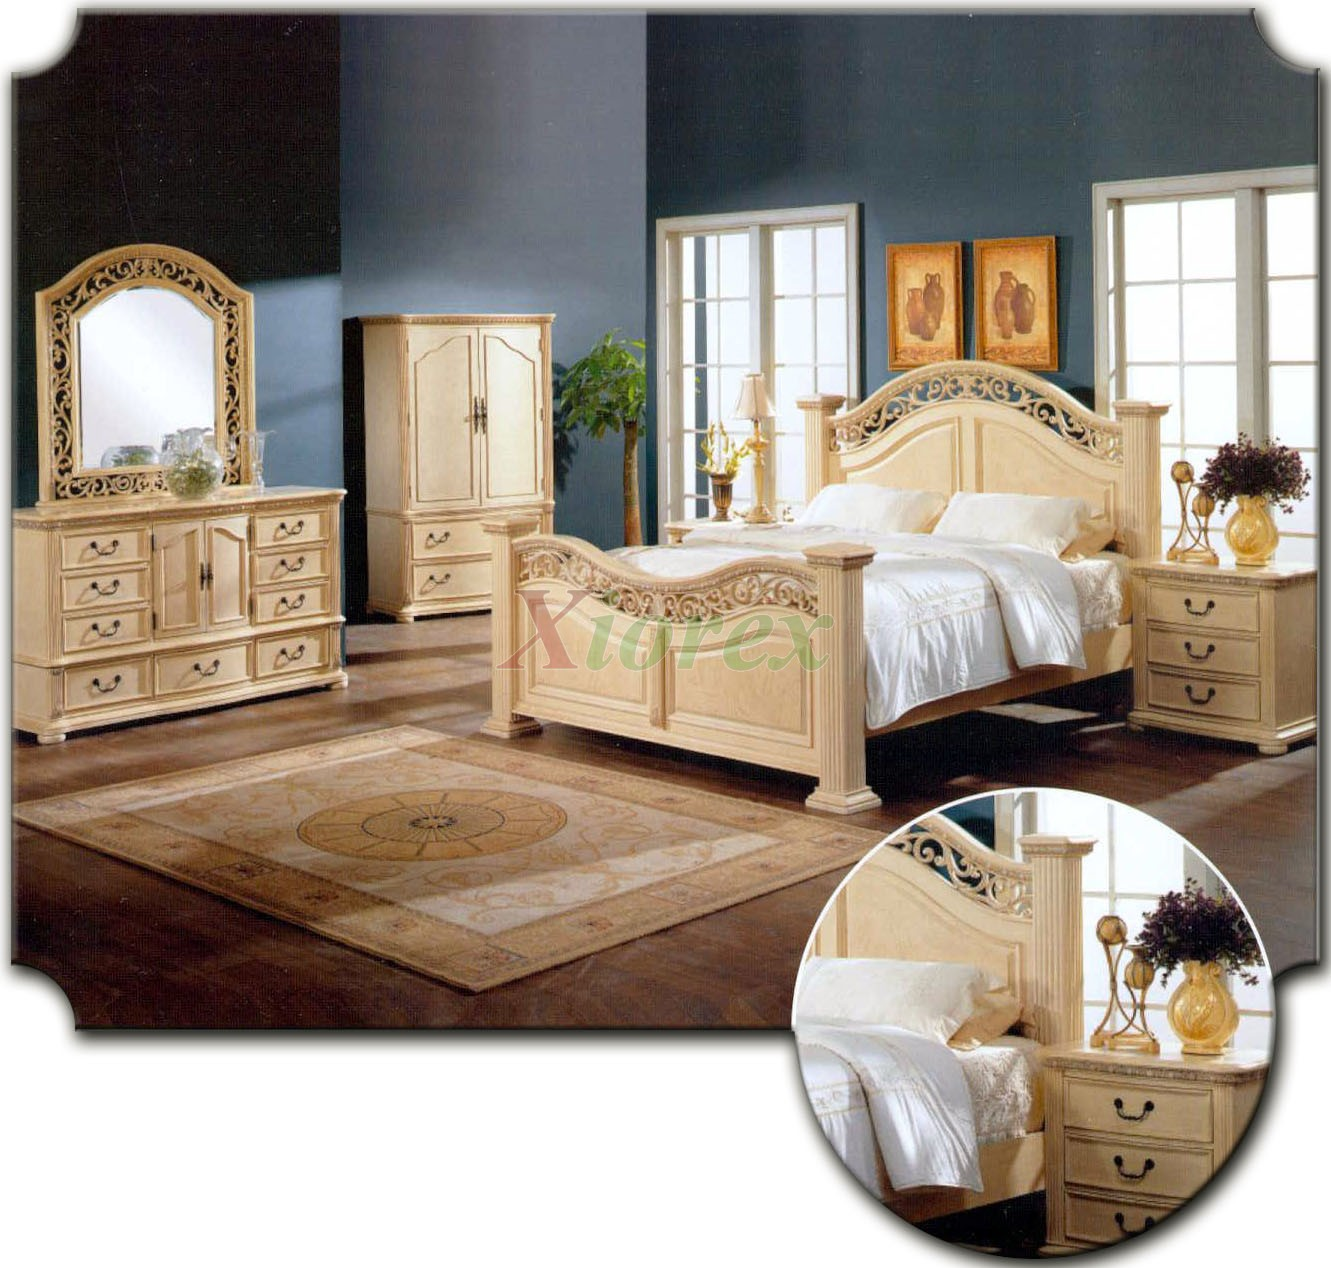 Impressive King Bedroom Furniture Sets 1331 x 1268 · 301 kB · jpeg